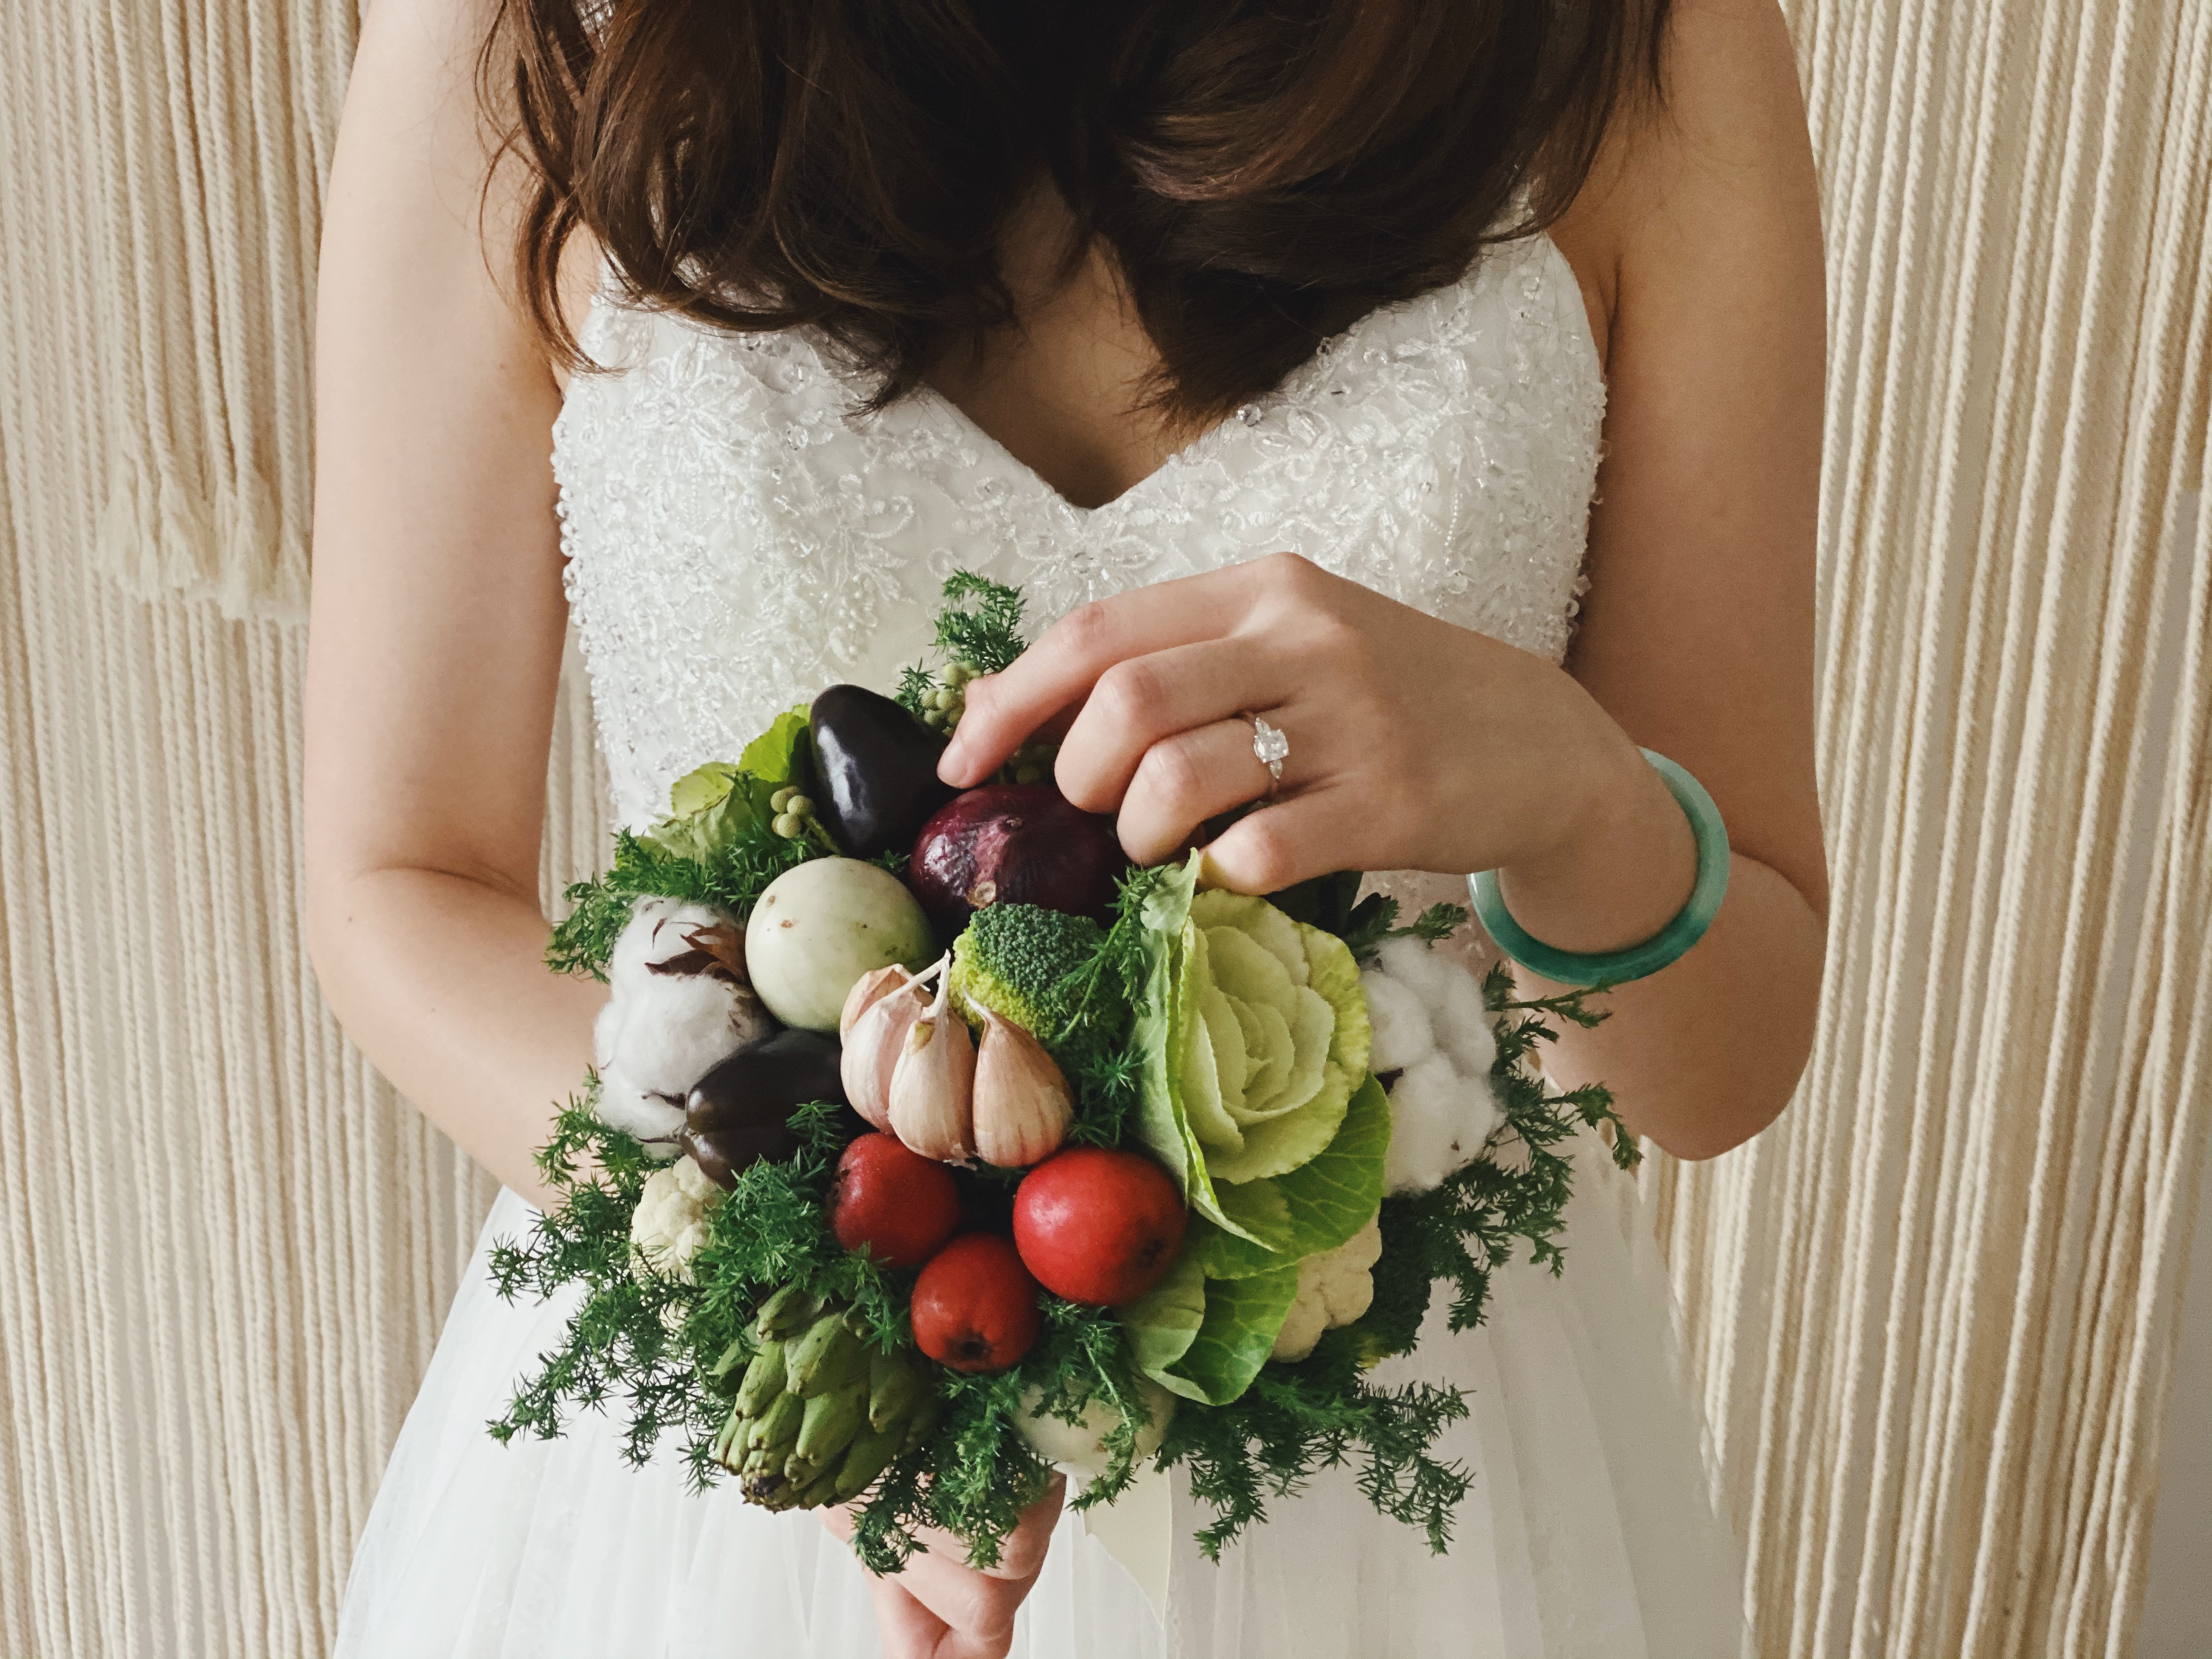 Veggie hand-held bridal bouquet